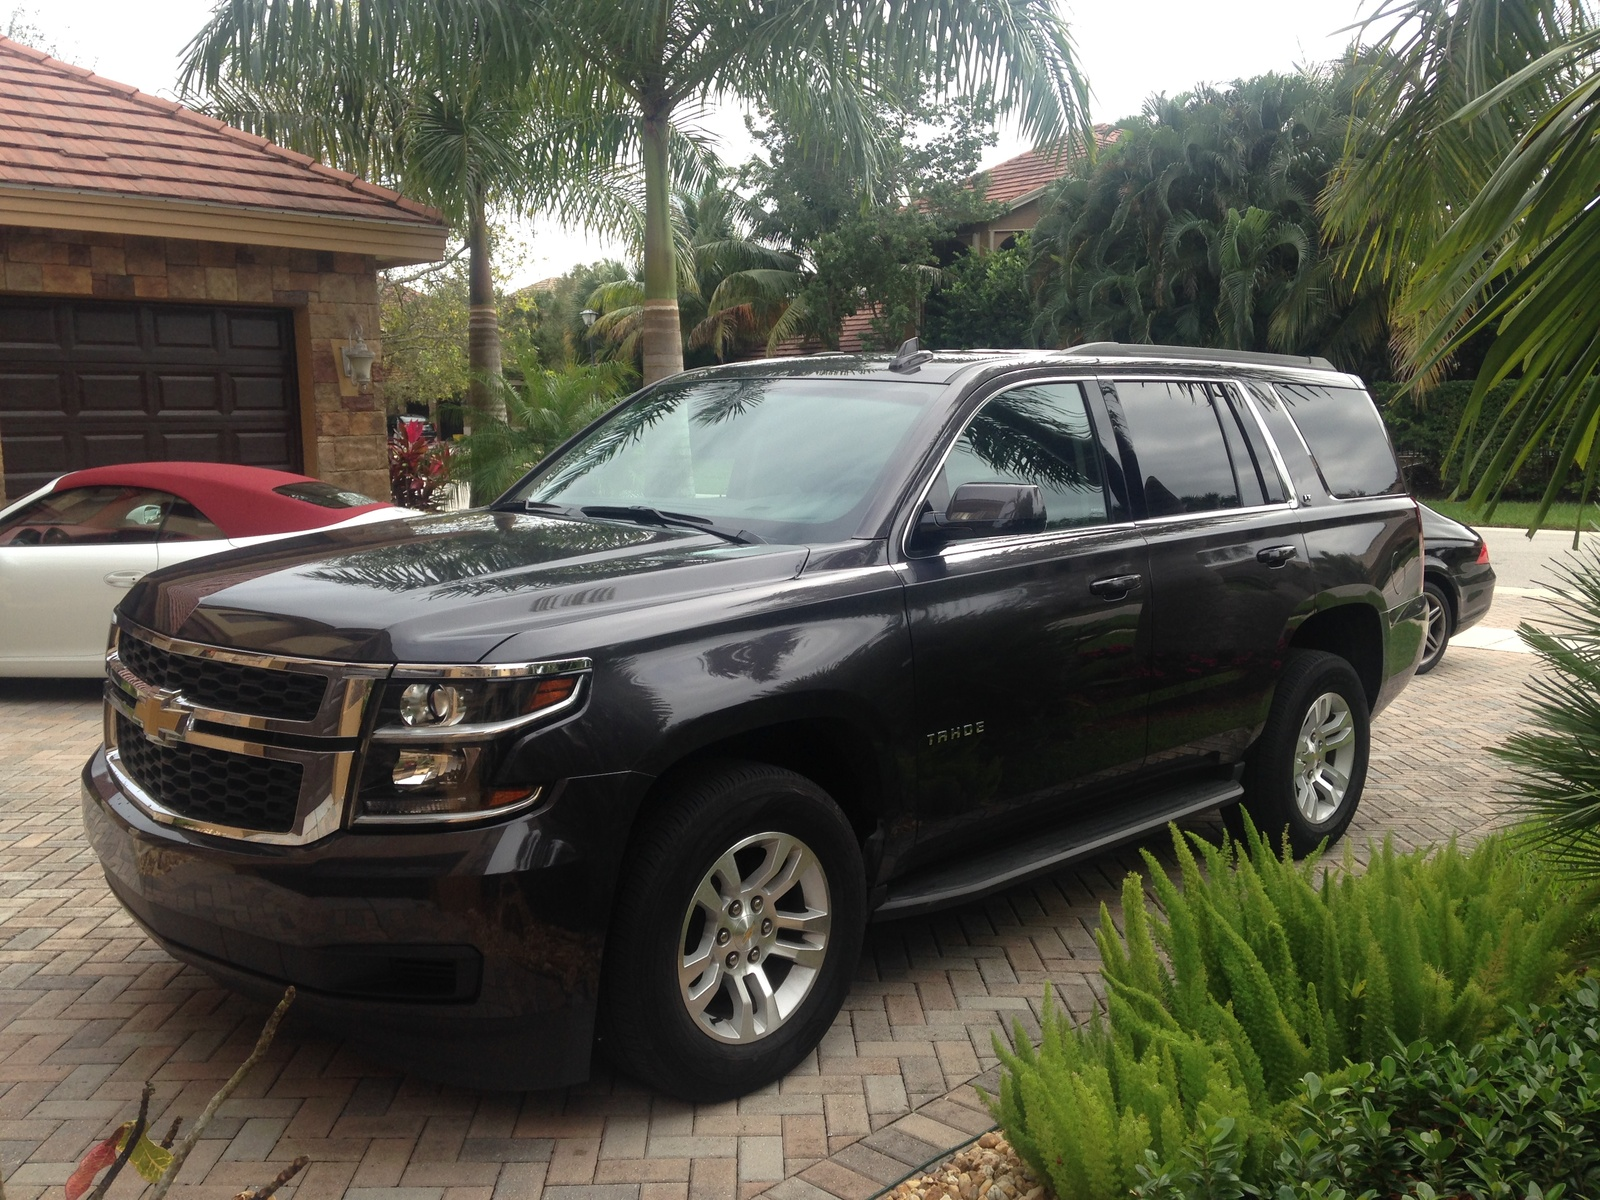 used 2015 chevy tahoe for sale on cargurs autos post. Black Bedroom Furniture Sets. Home Design Ideas